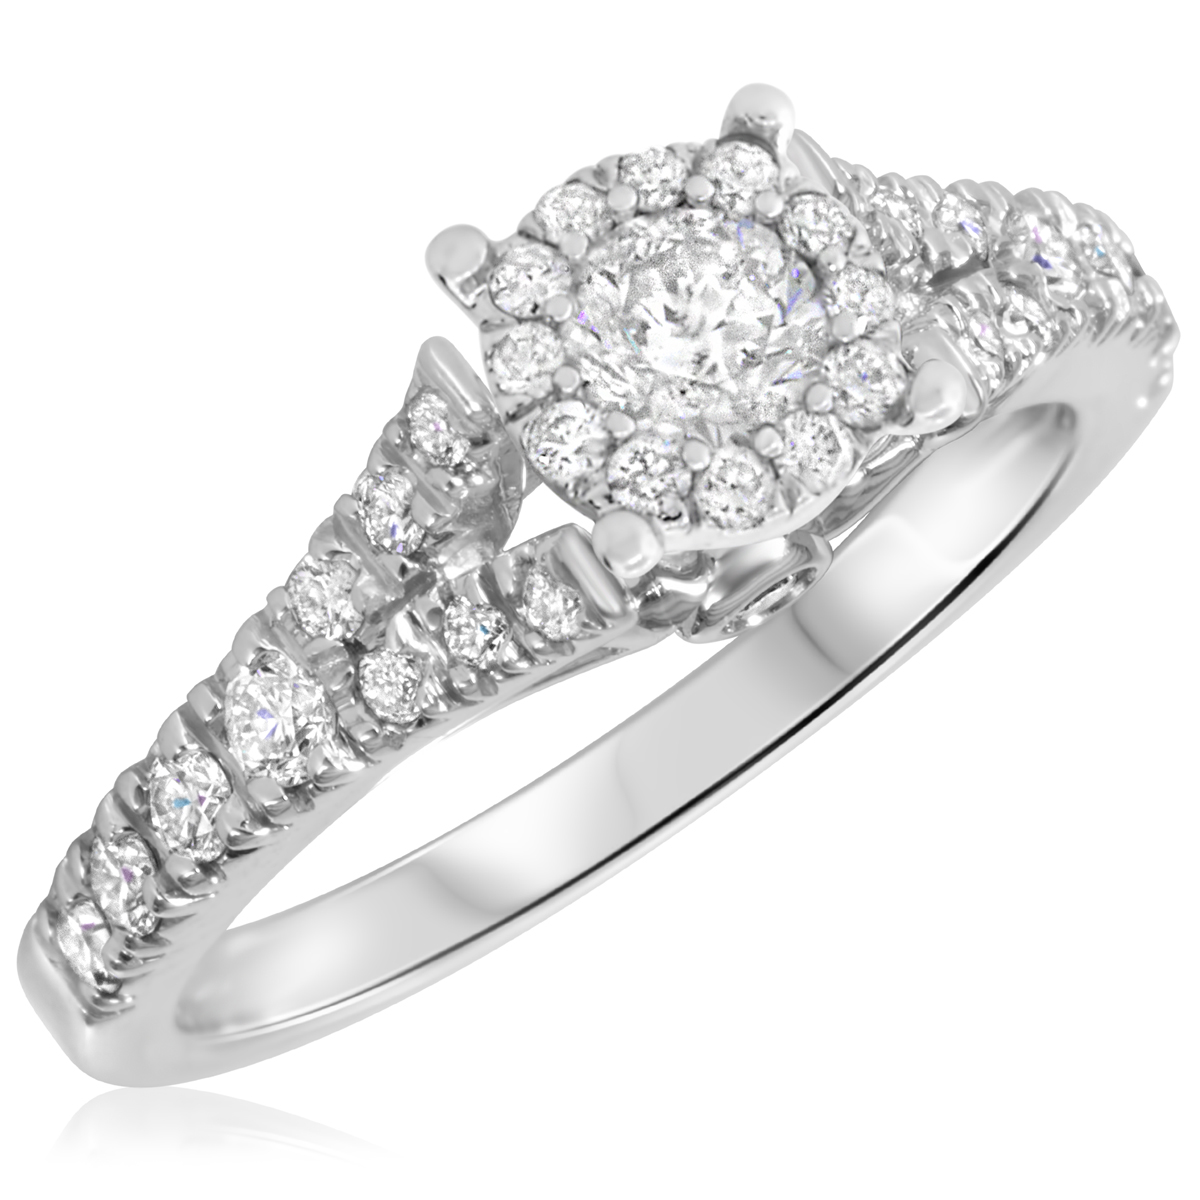 7/8 CT. T.W. Diamond Ladies Engagement Ring 14K White Gold